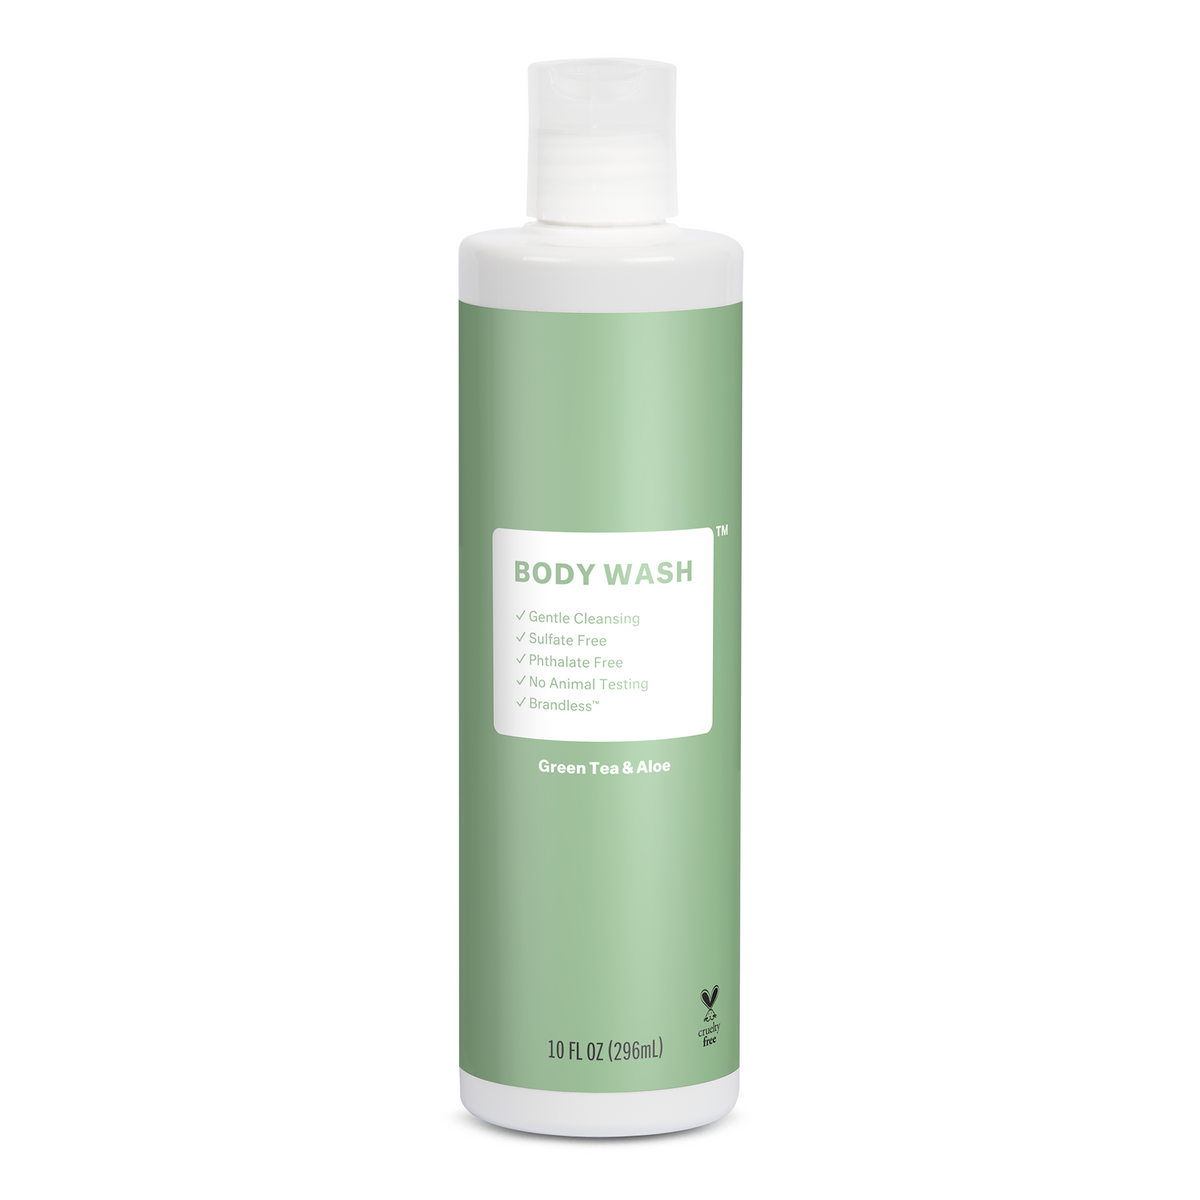 Green Tea & Aloe Body Wash